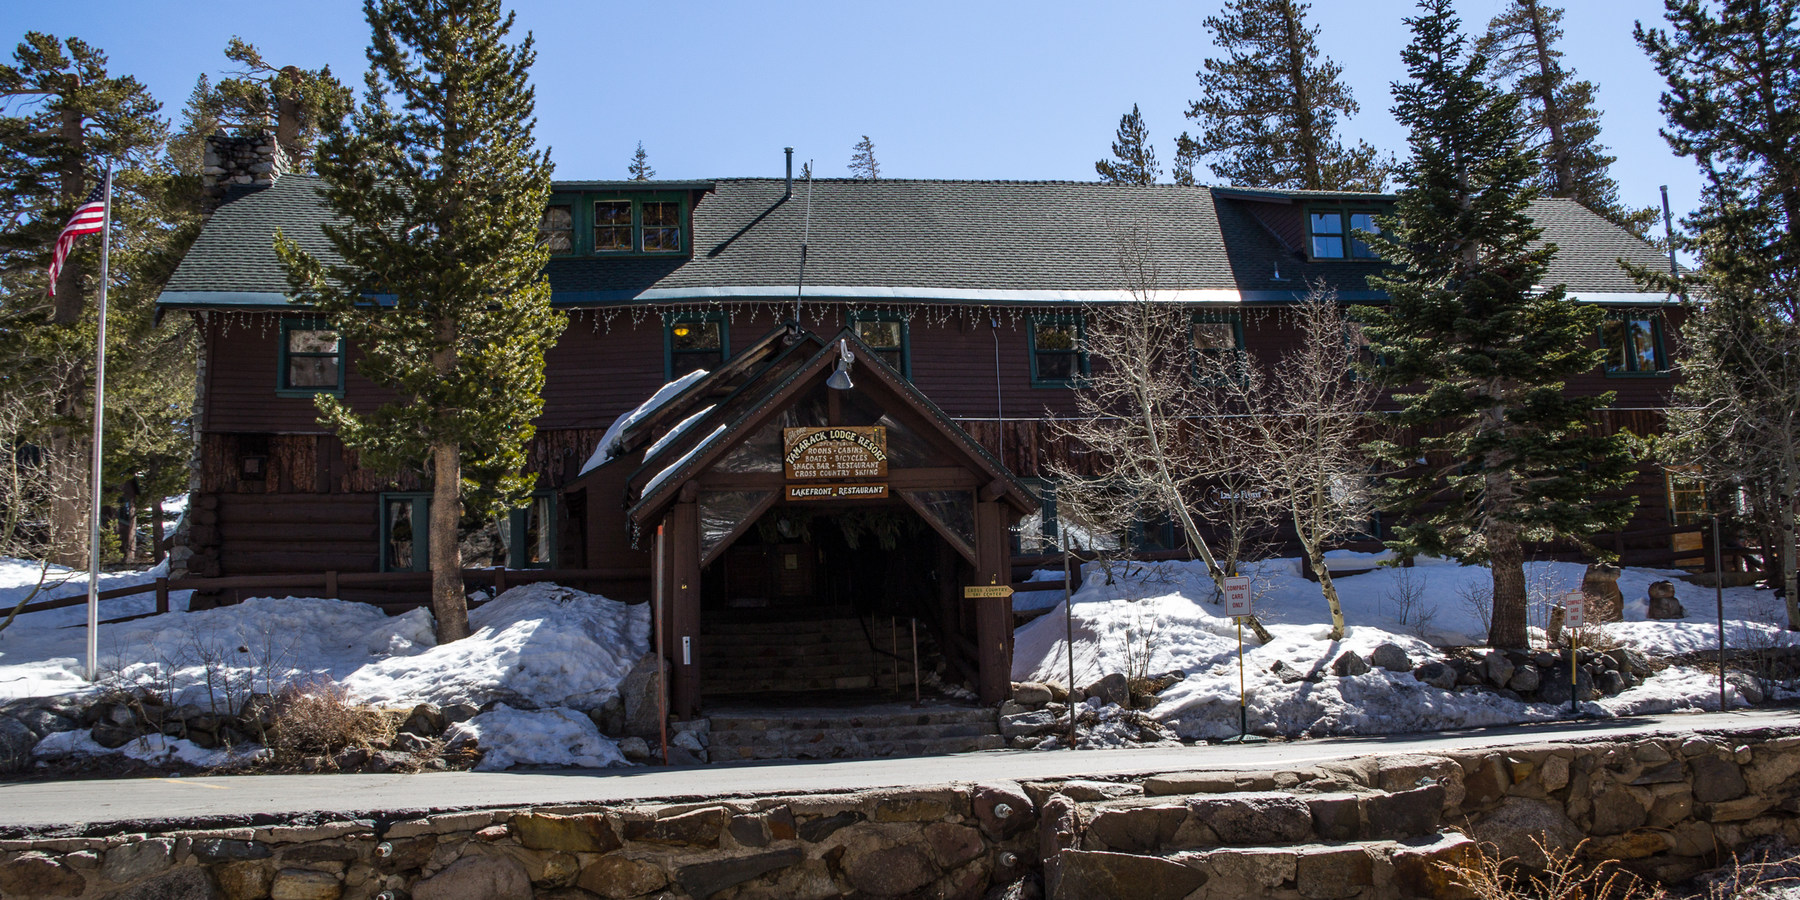 supplied sorensensresort cabins california stay mammoth lake feature sierra winter cozy s at resorts in cozywintercottages vc lodges this dsc high